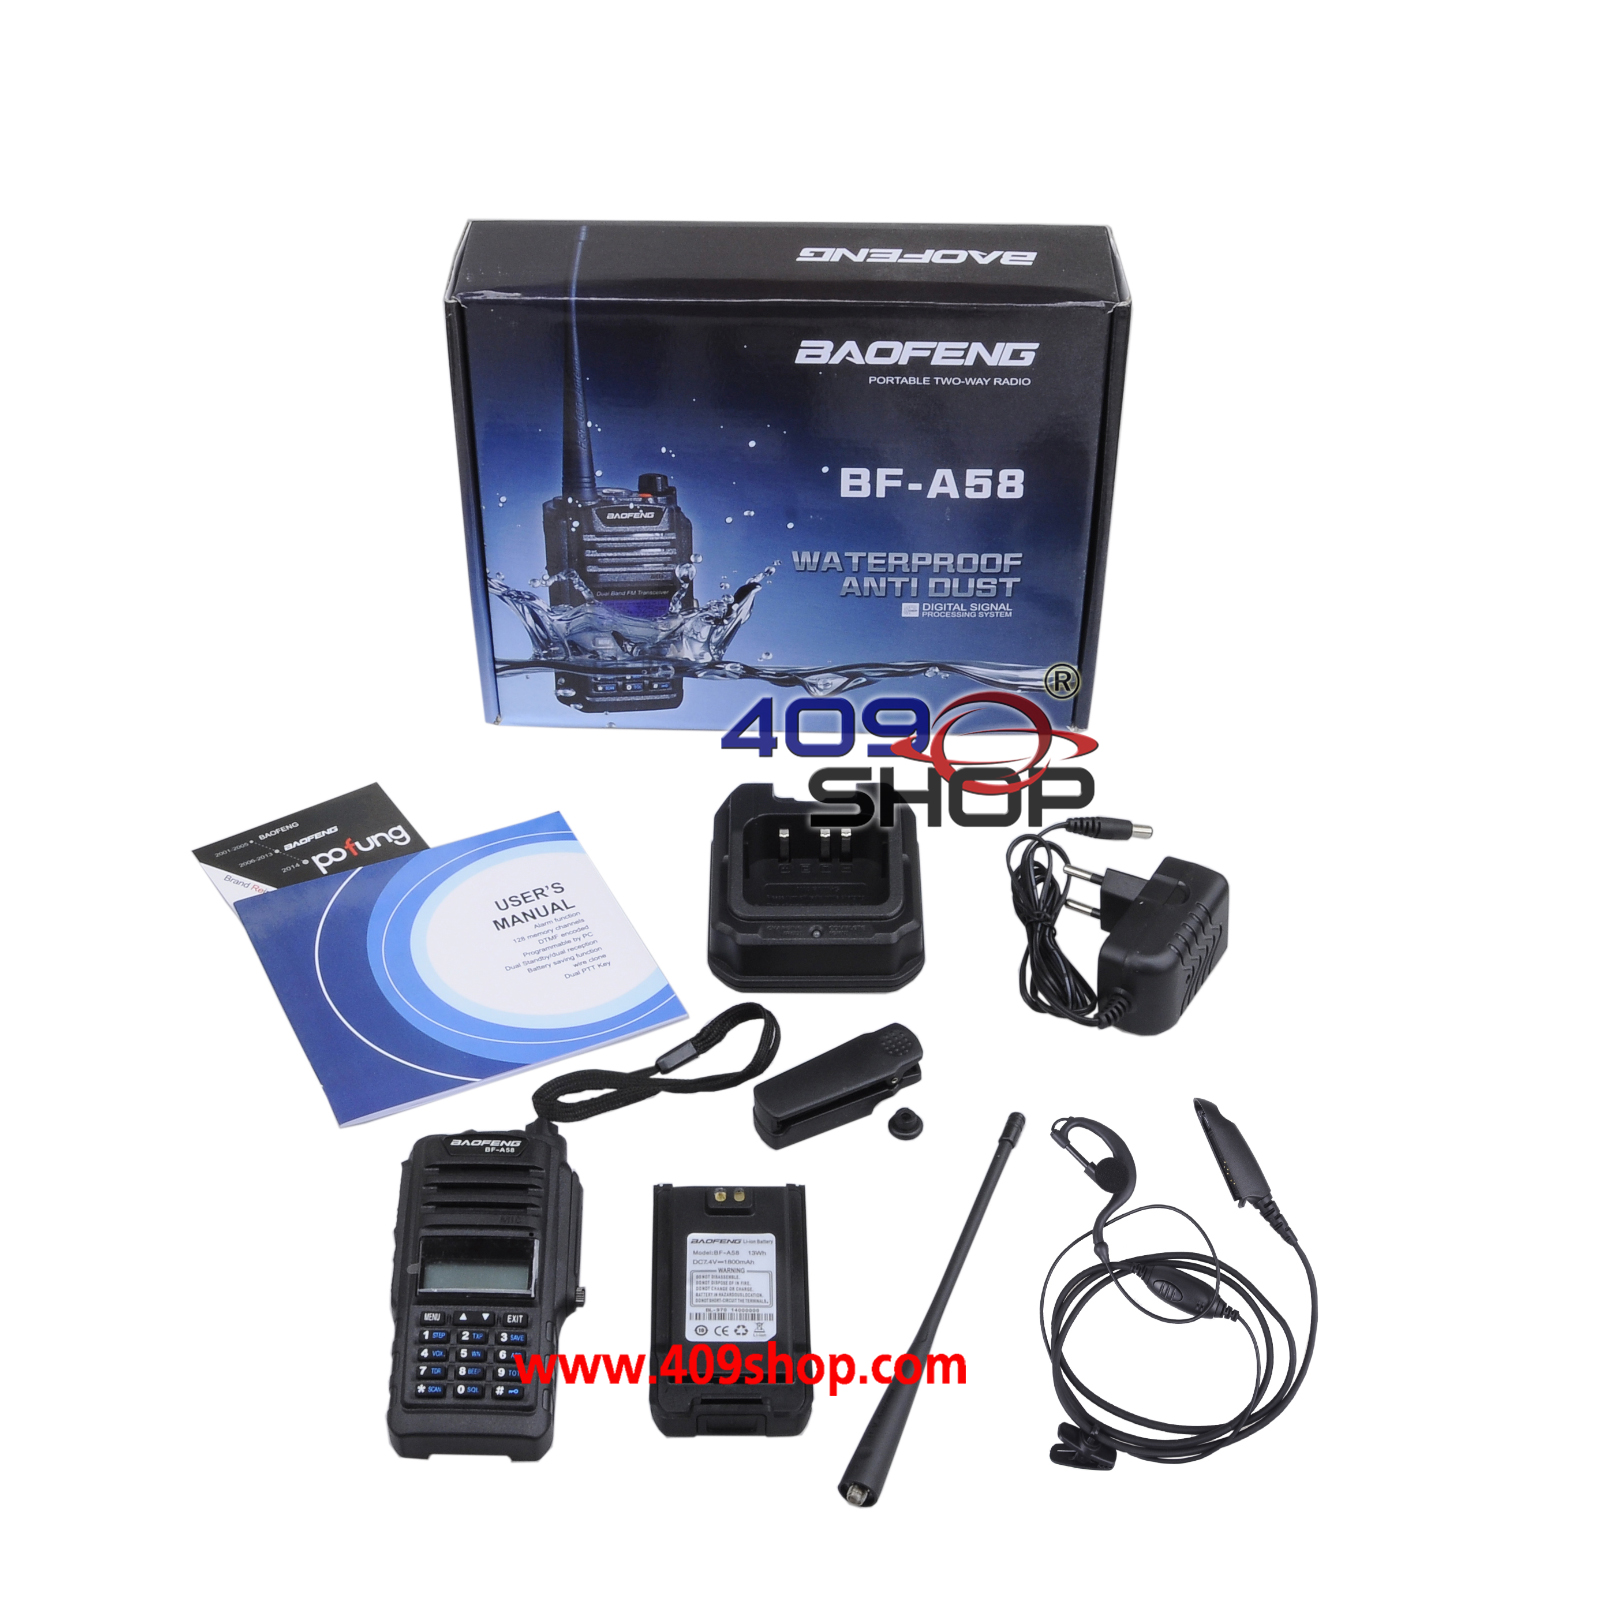 BAOFENG BF-A58 WATERPROOF